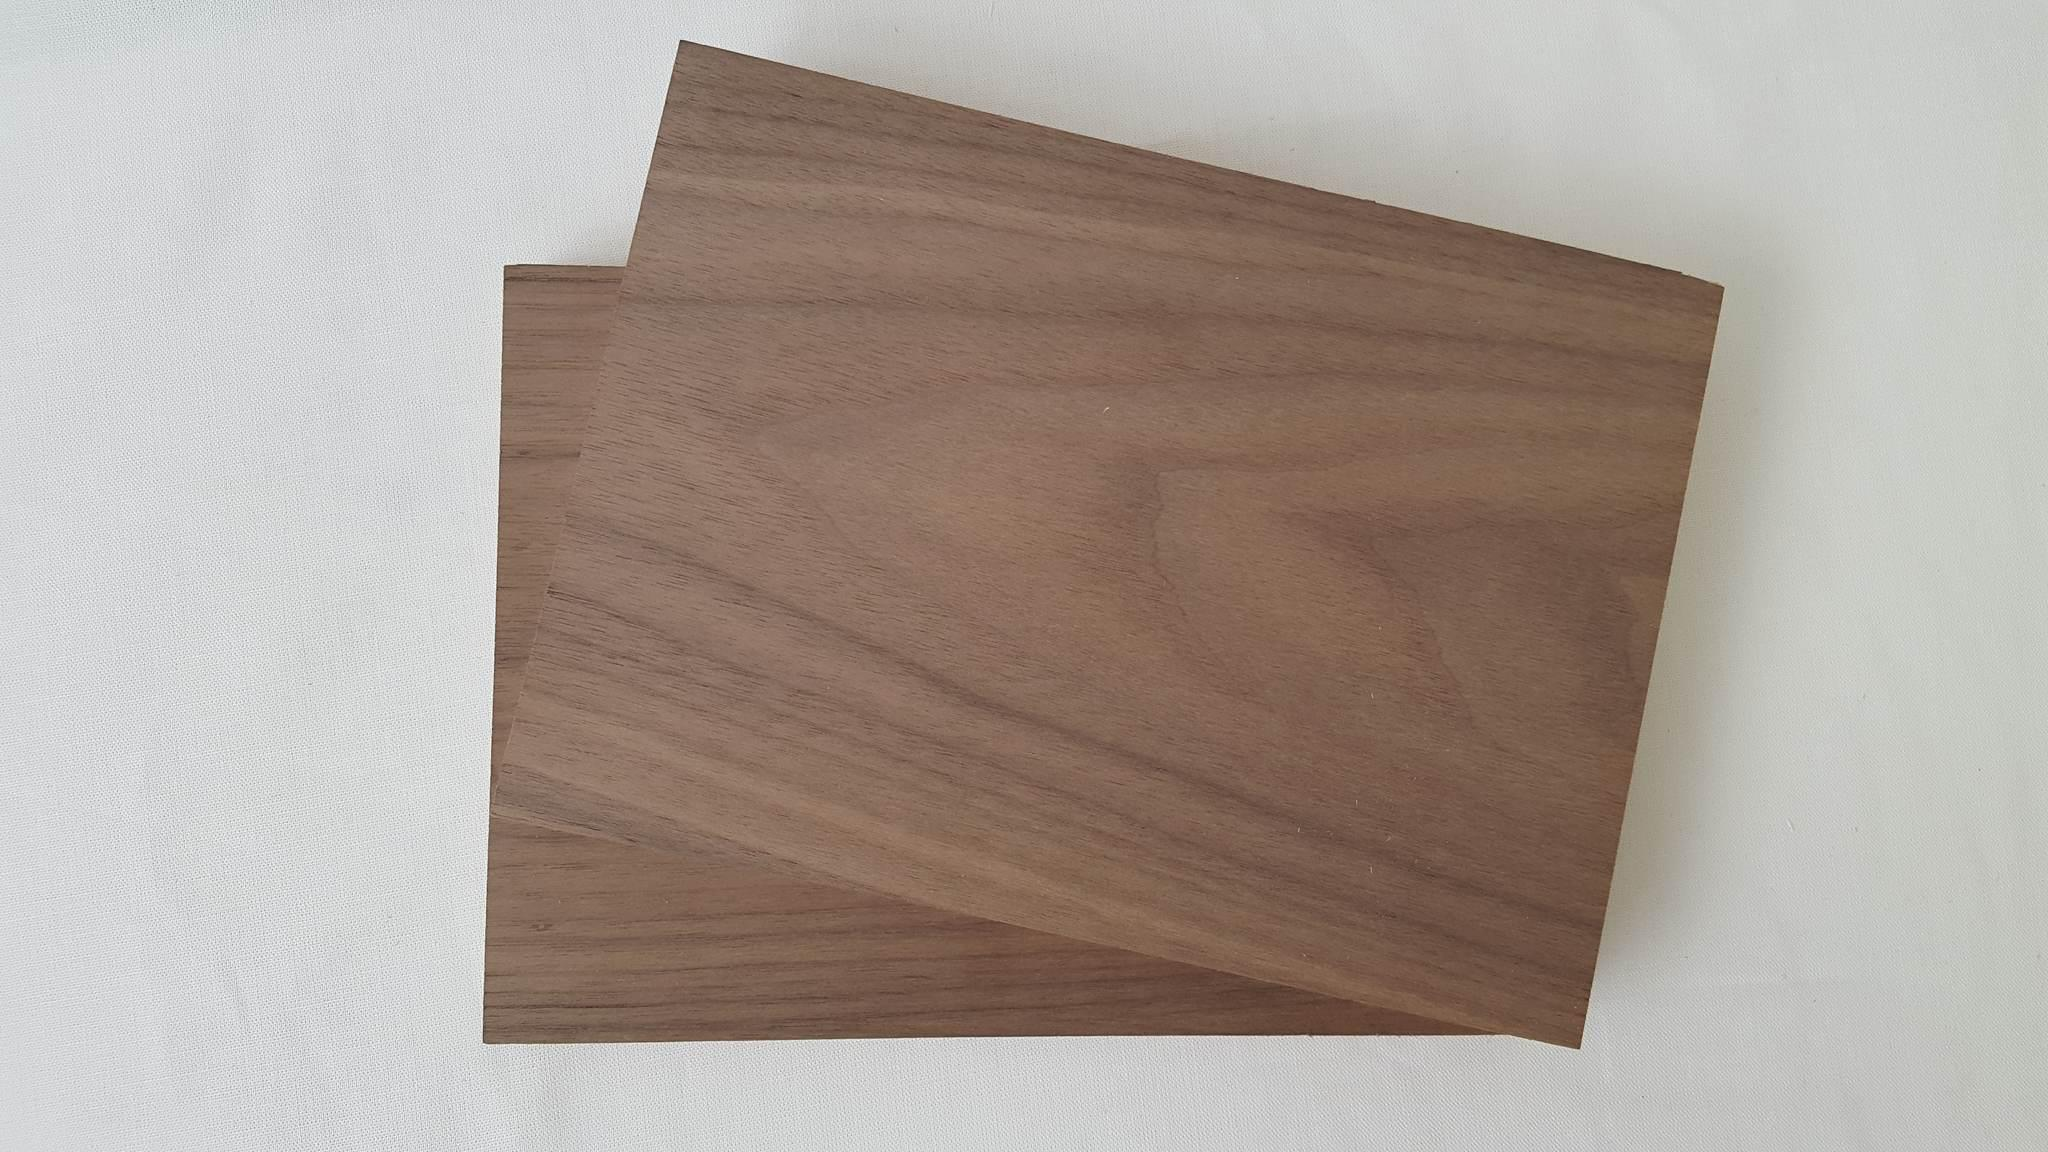 veneer-american-walnut-particle-board-plywood-sheet